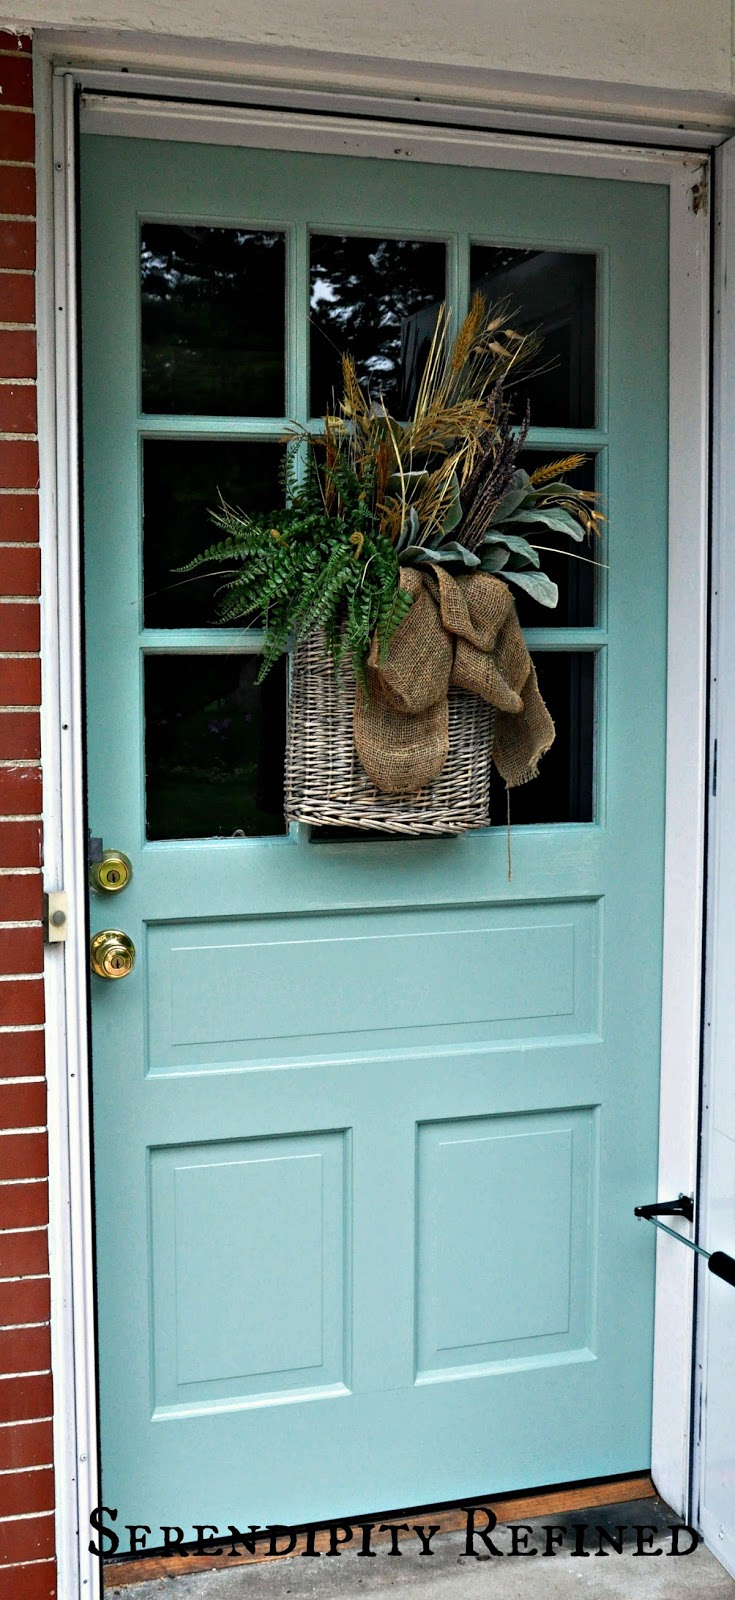 Serendipity refined blog august 2013 for Best wood for front door